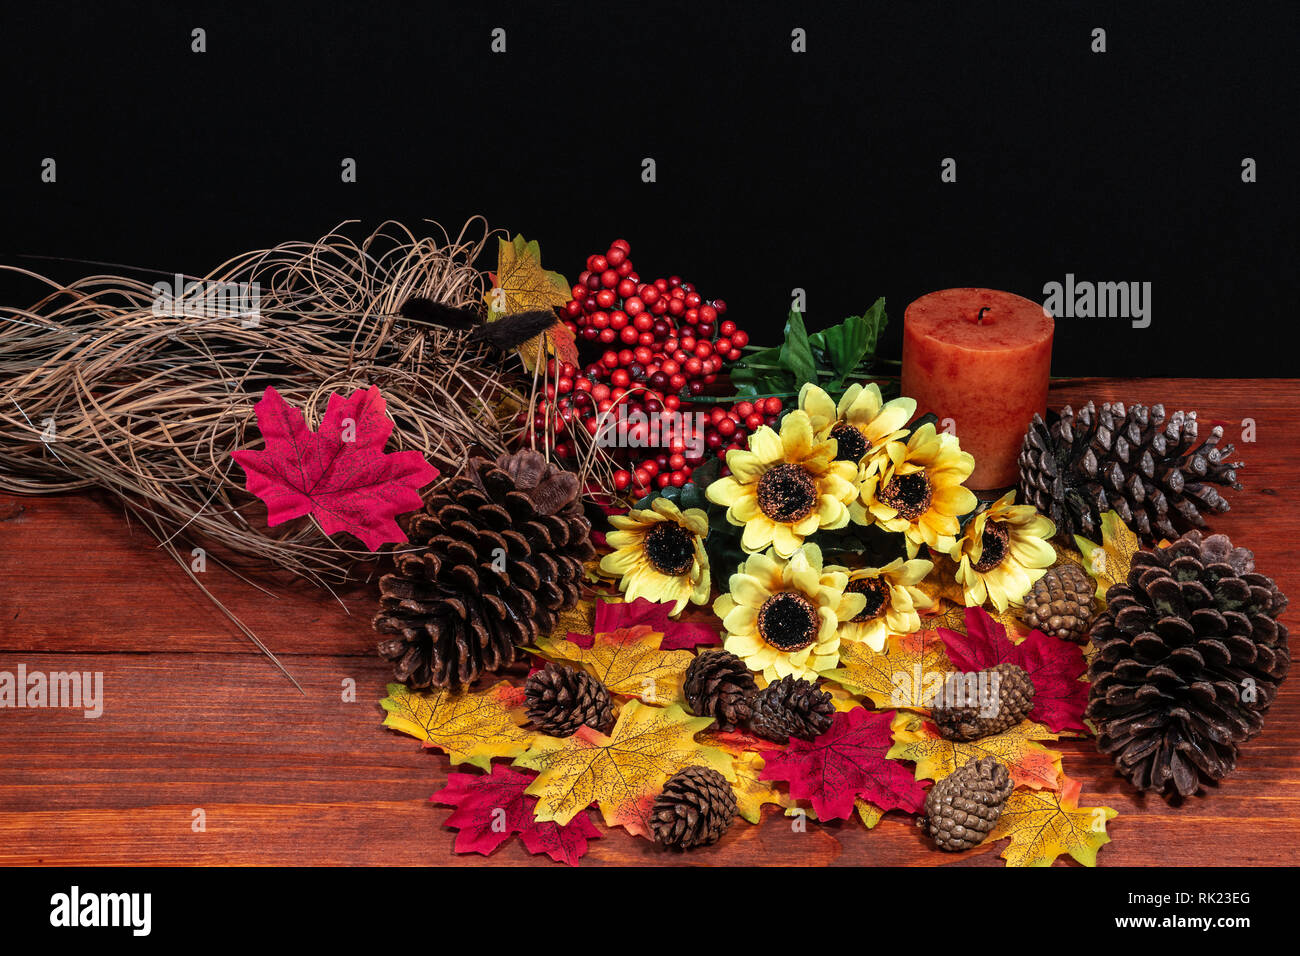 Silk maple leaves, beautiful bouquet of sunflowers, frosted pinecones and orange candle on tabletop with dark background. Stock Photo